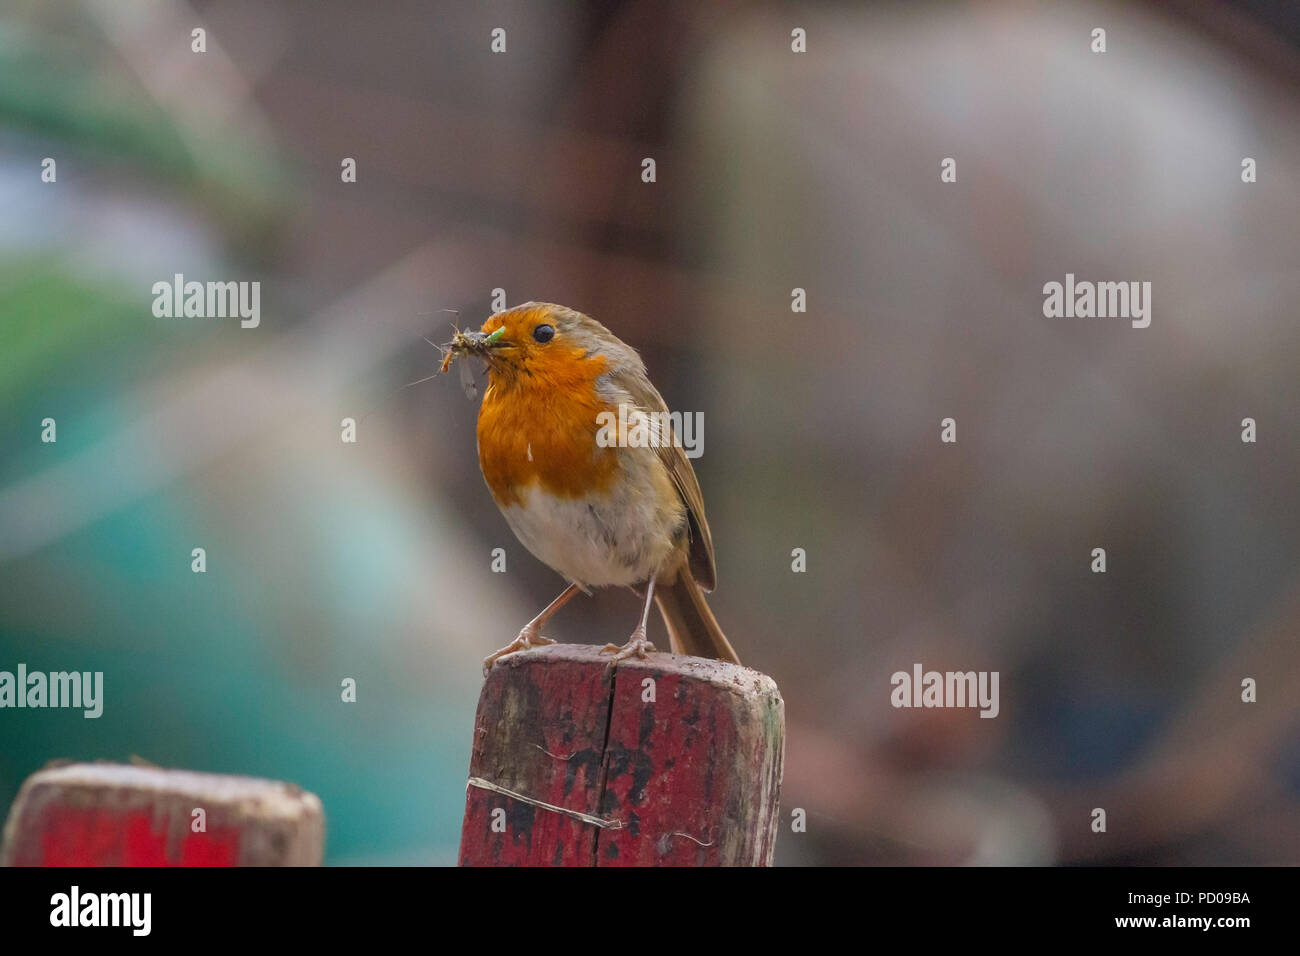 A robin with a beak full of insects ready to feed its young. - Stock Image